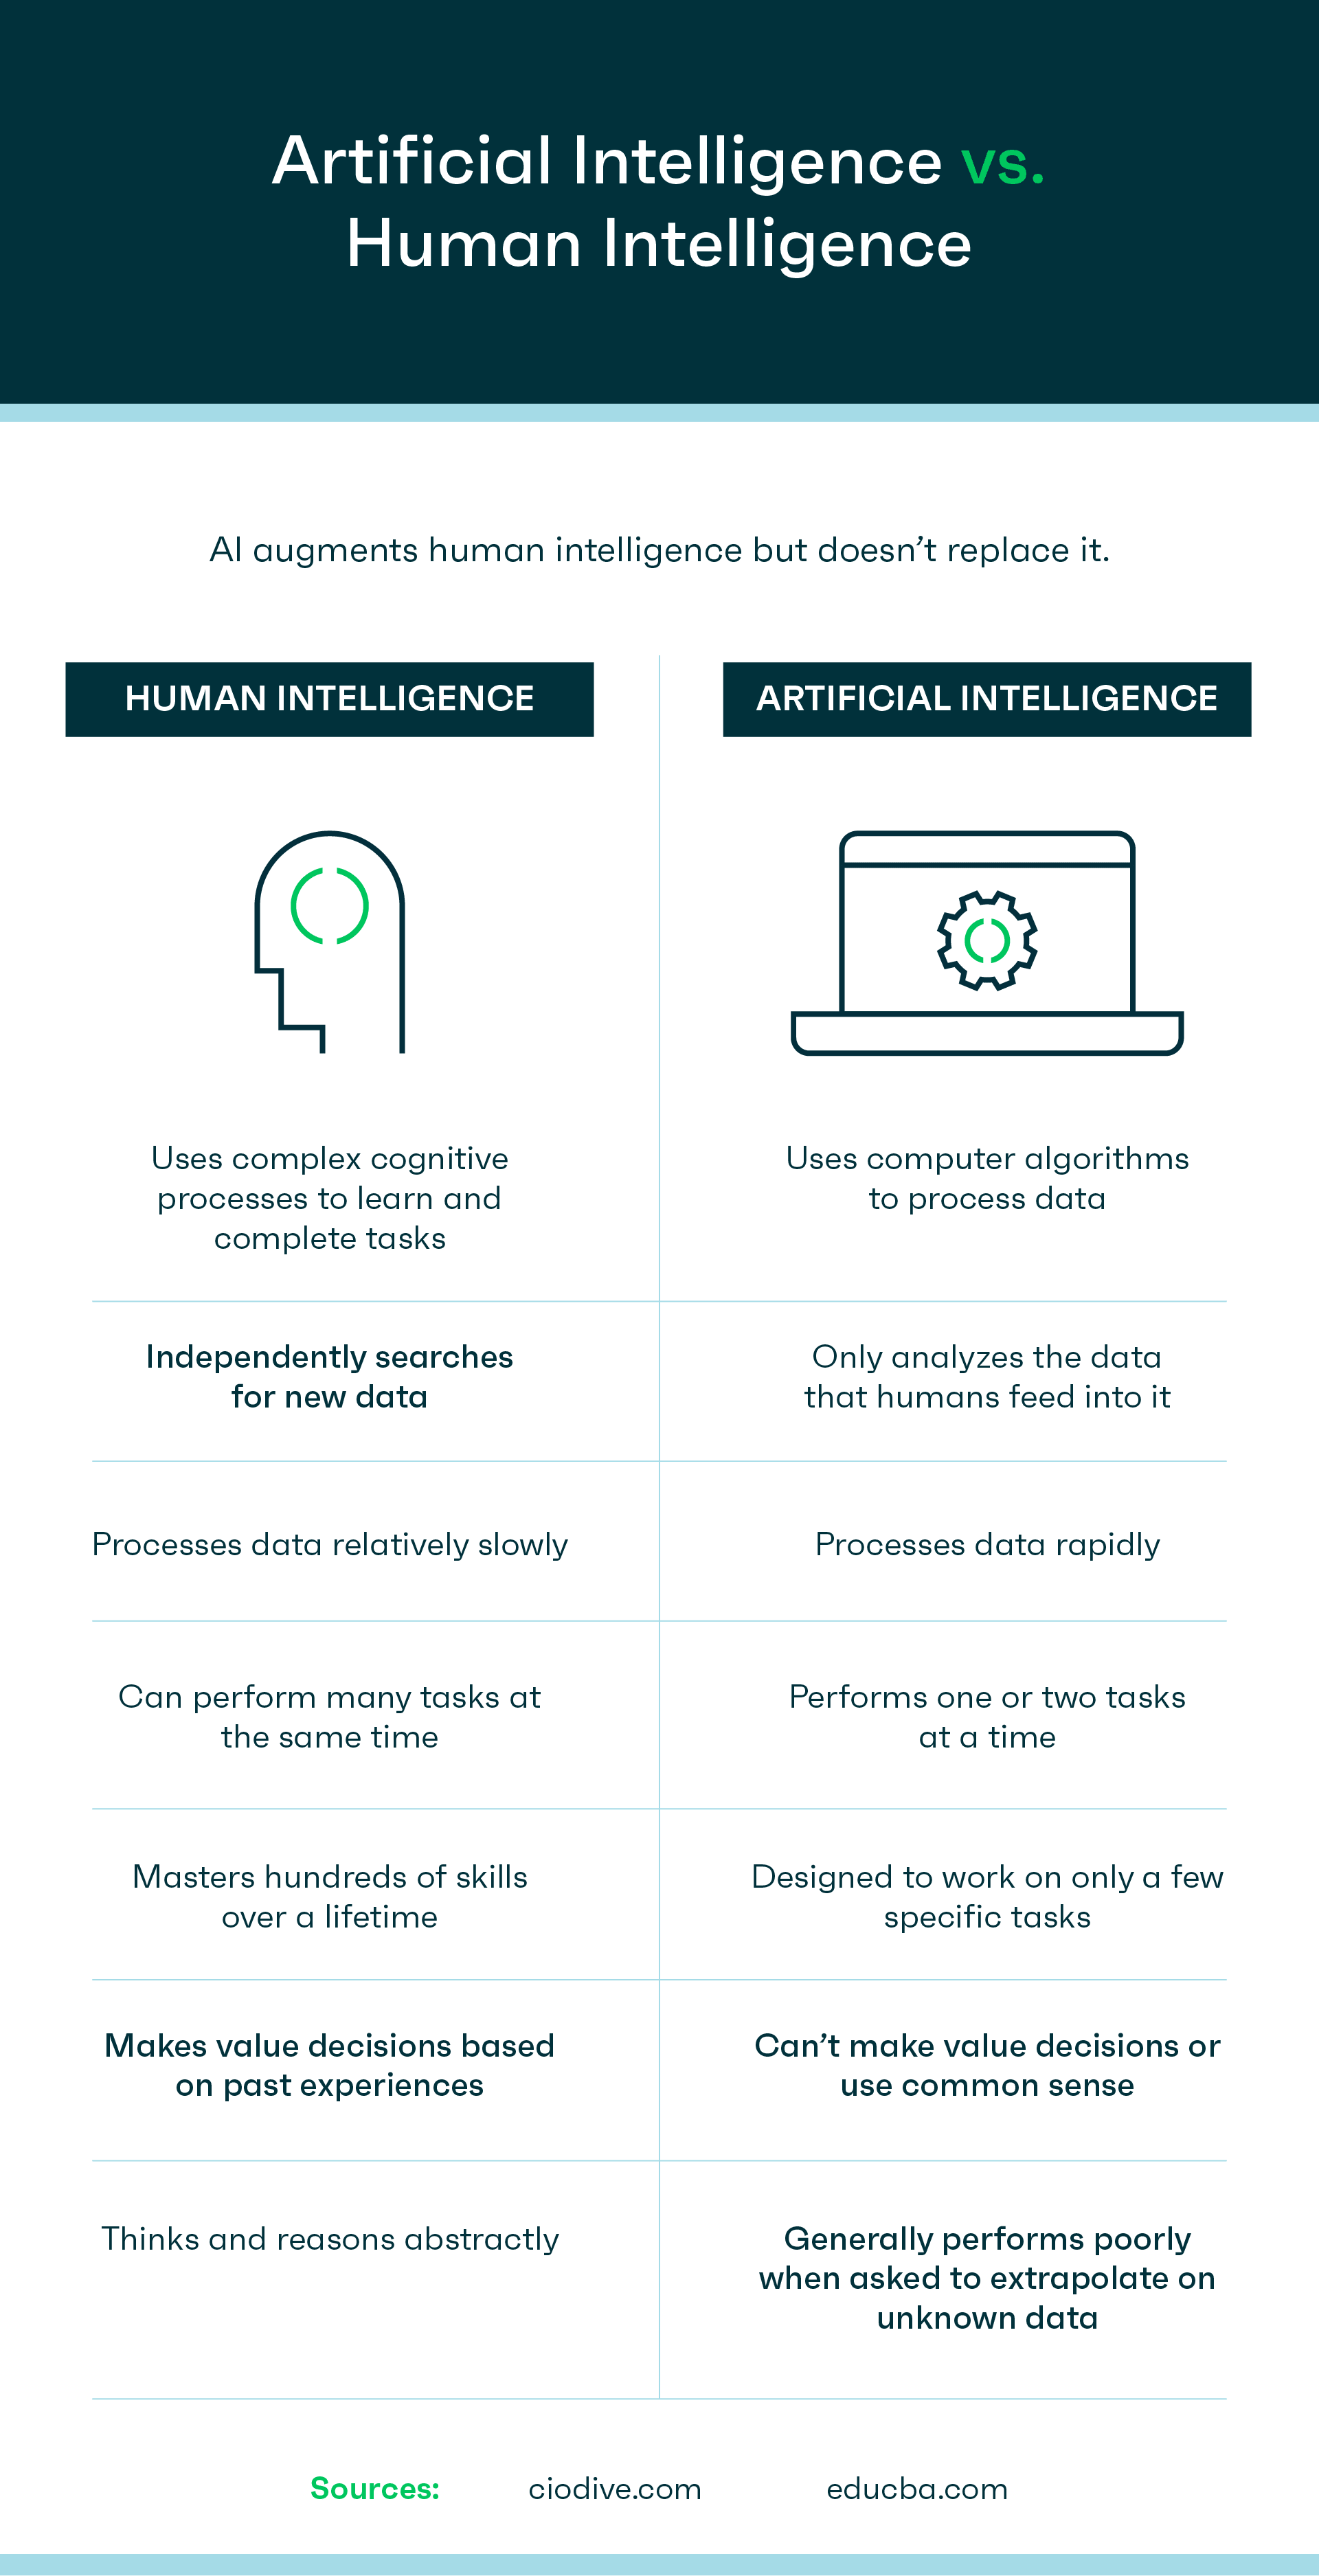 Comparison of Artificial Intelligence vs Human Intelligence